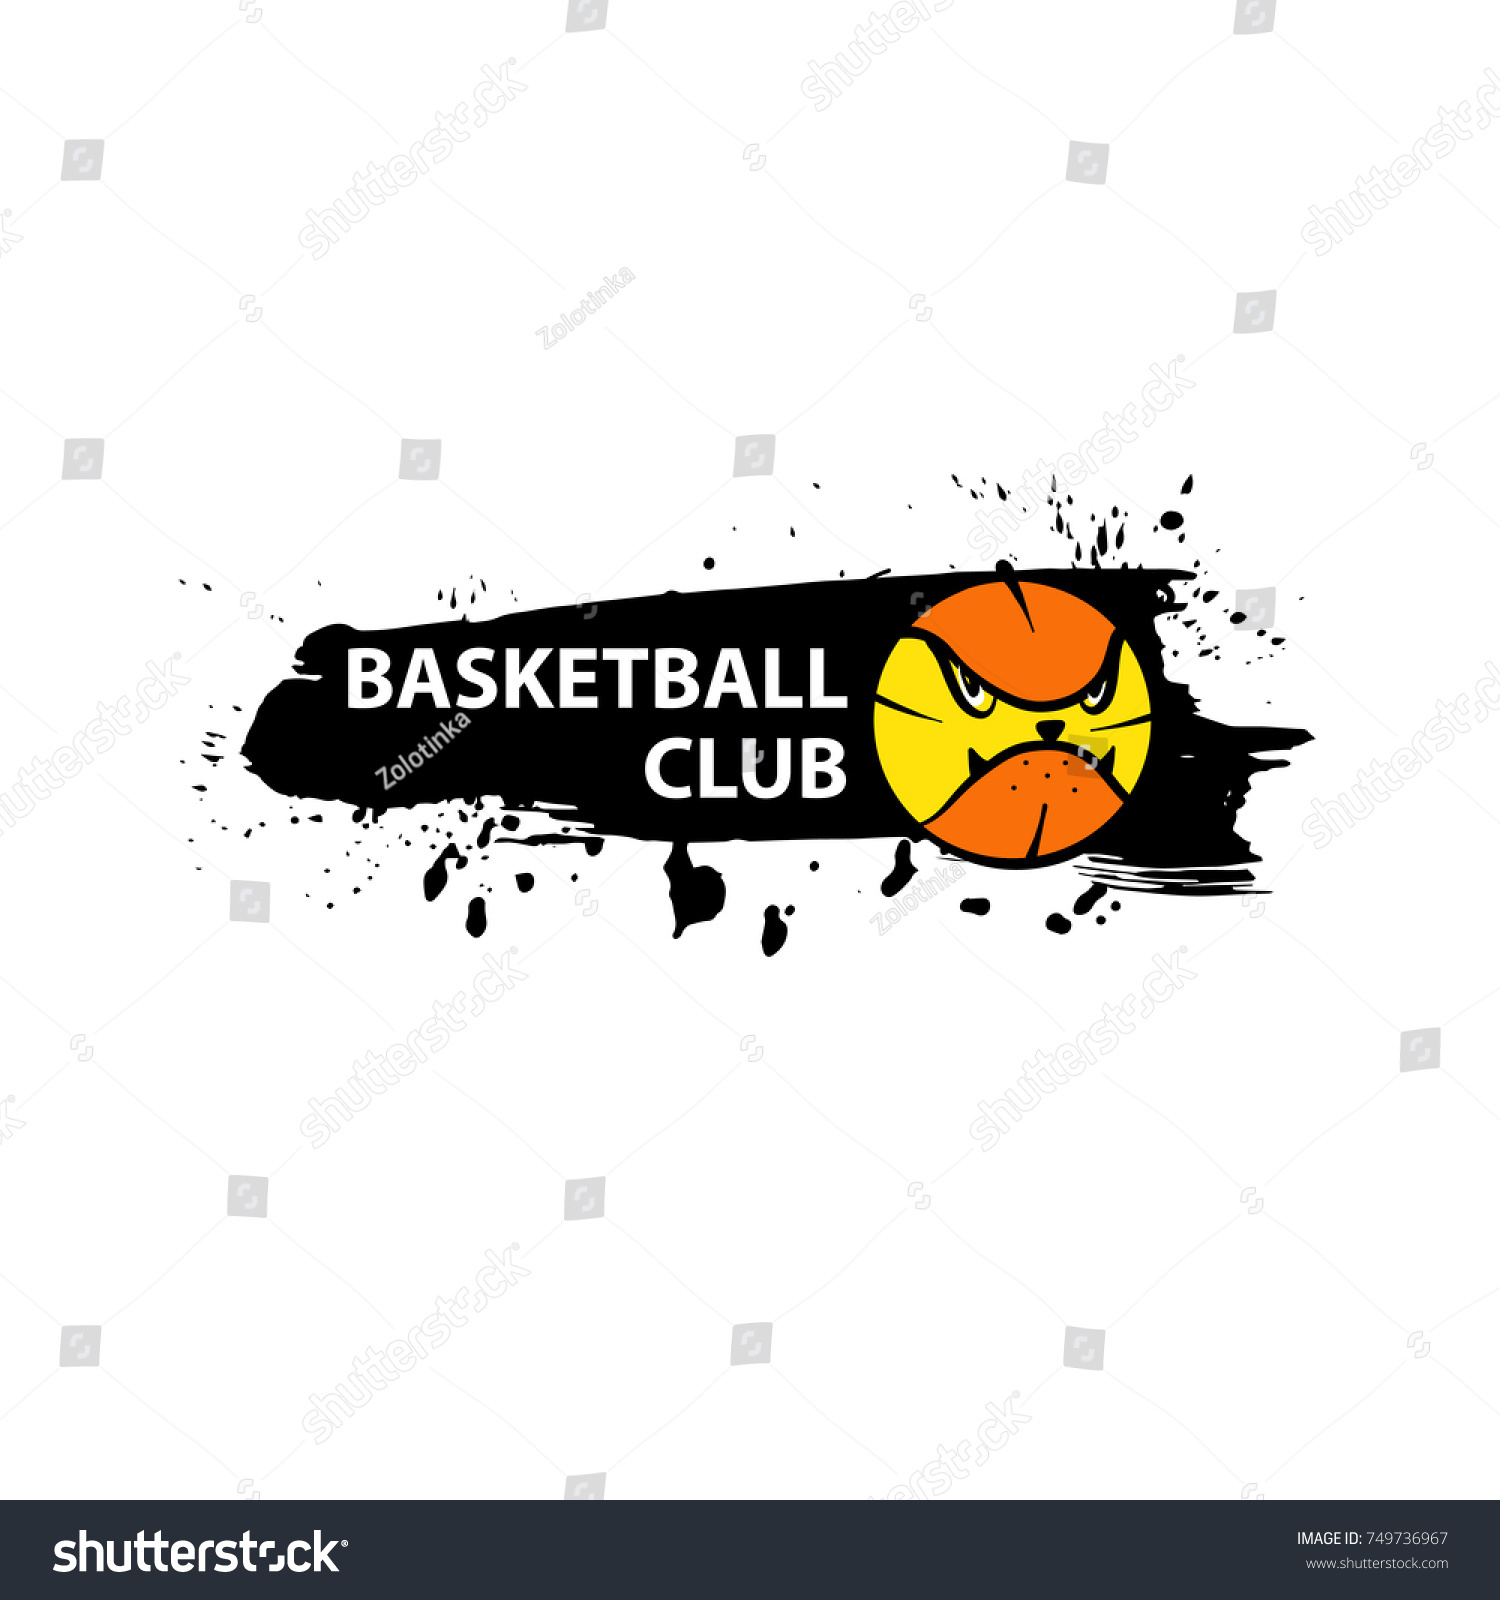 Template Image Ball Basketball Game Concept Stock Vector Royalty - Game concept template